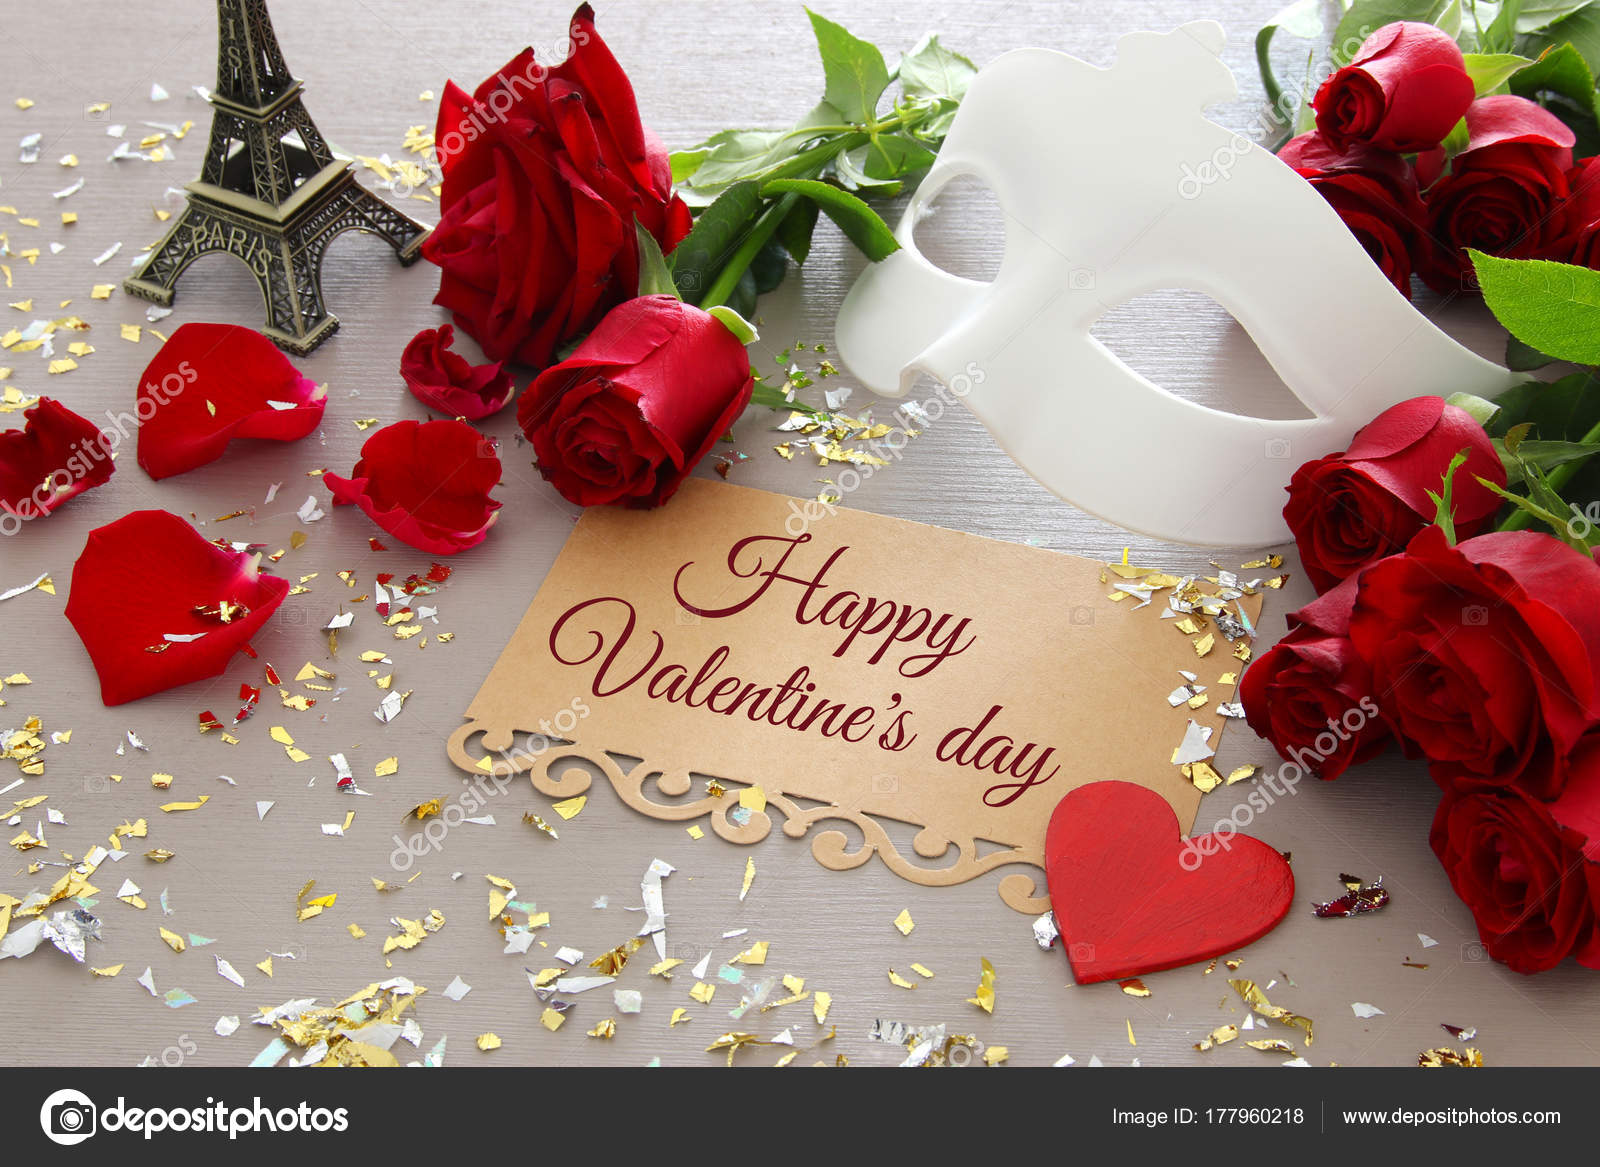 Valentines day romantic background with beautiful bouquet of roses valentines day romantic background with beautiful bouquet of roses and masquerade white mask on wooden table izmirmasajfo